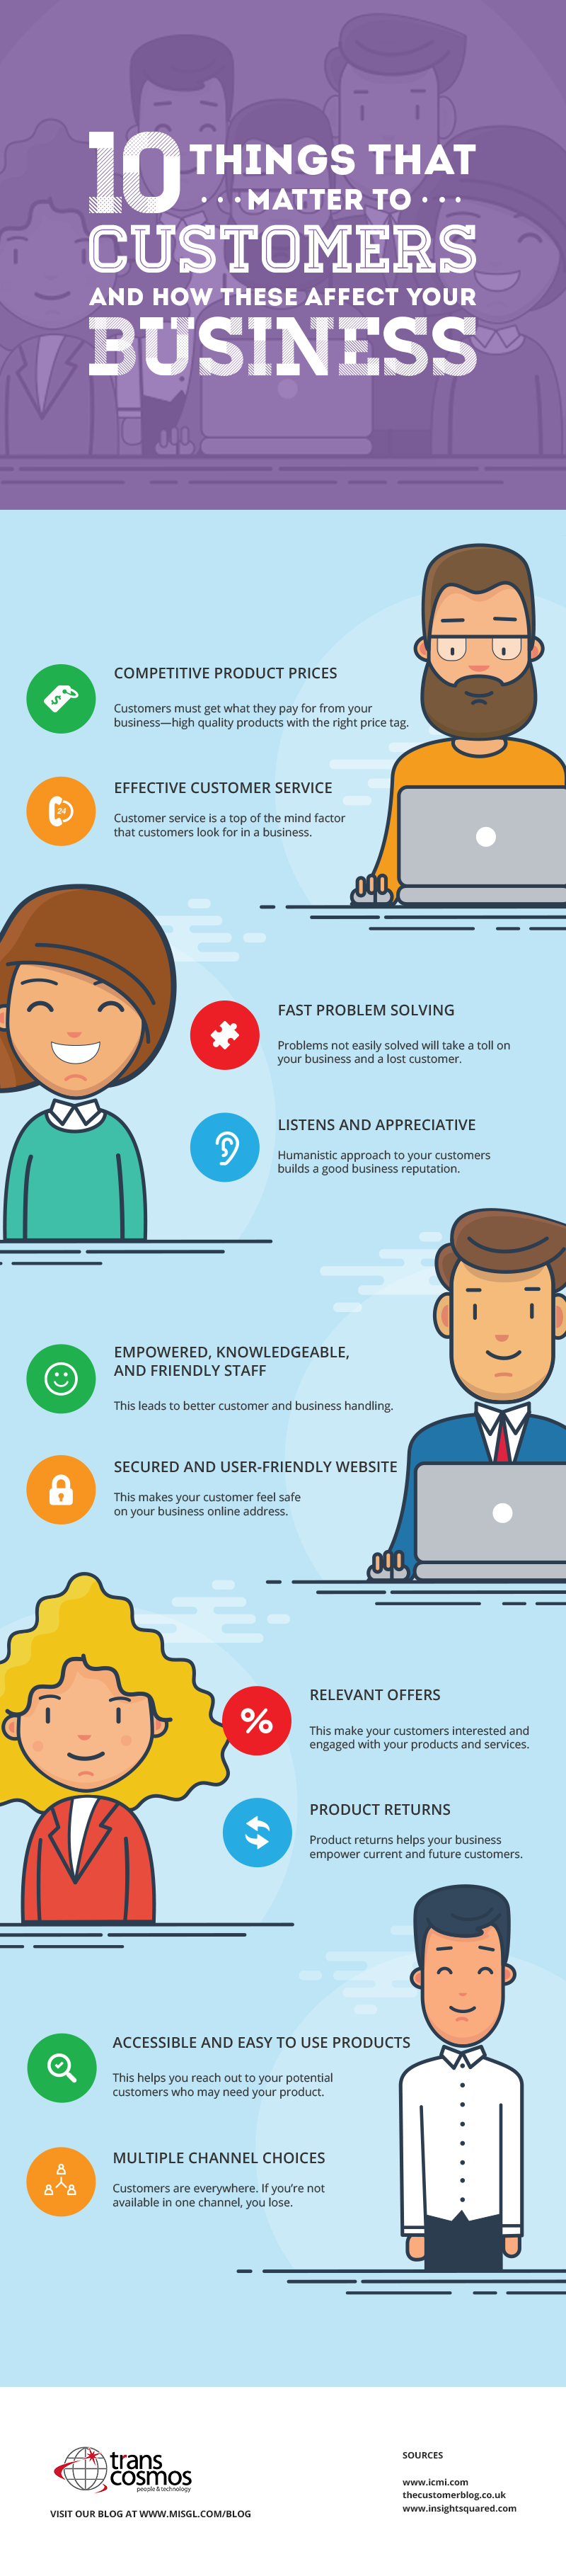 10 Things That Matter To Customers And How These Affect Your Business #Infographic